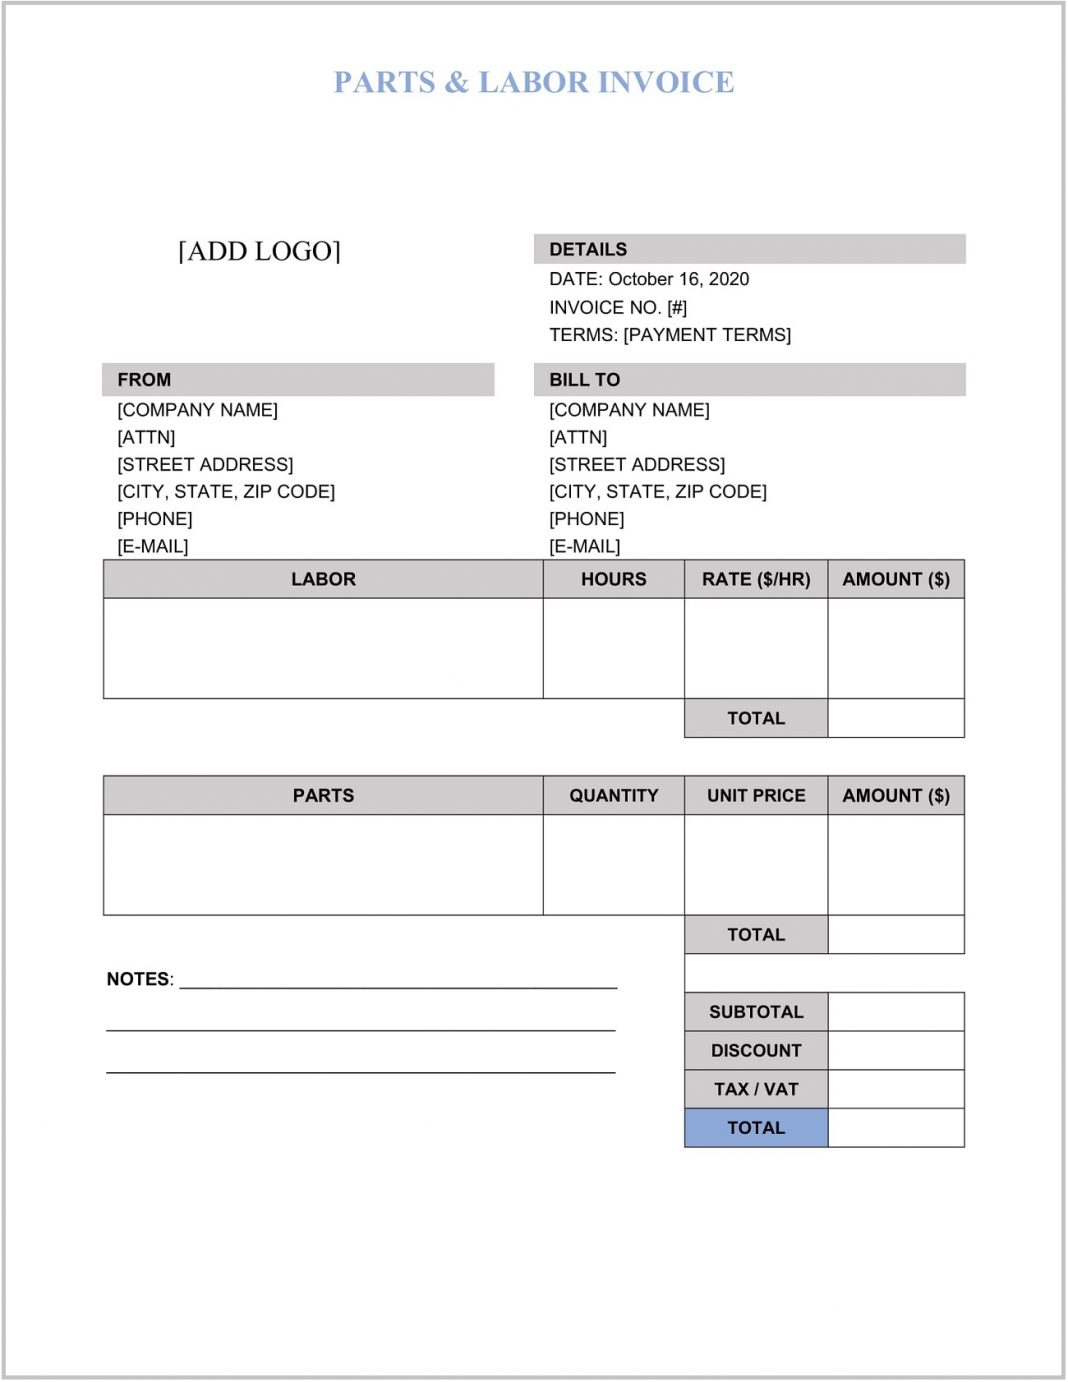 Parts And Labor Invoice Word Template Form Fencing Templates Printable Free Paper Farm  Sample Large